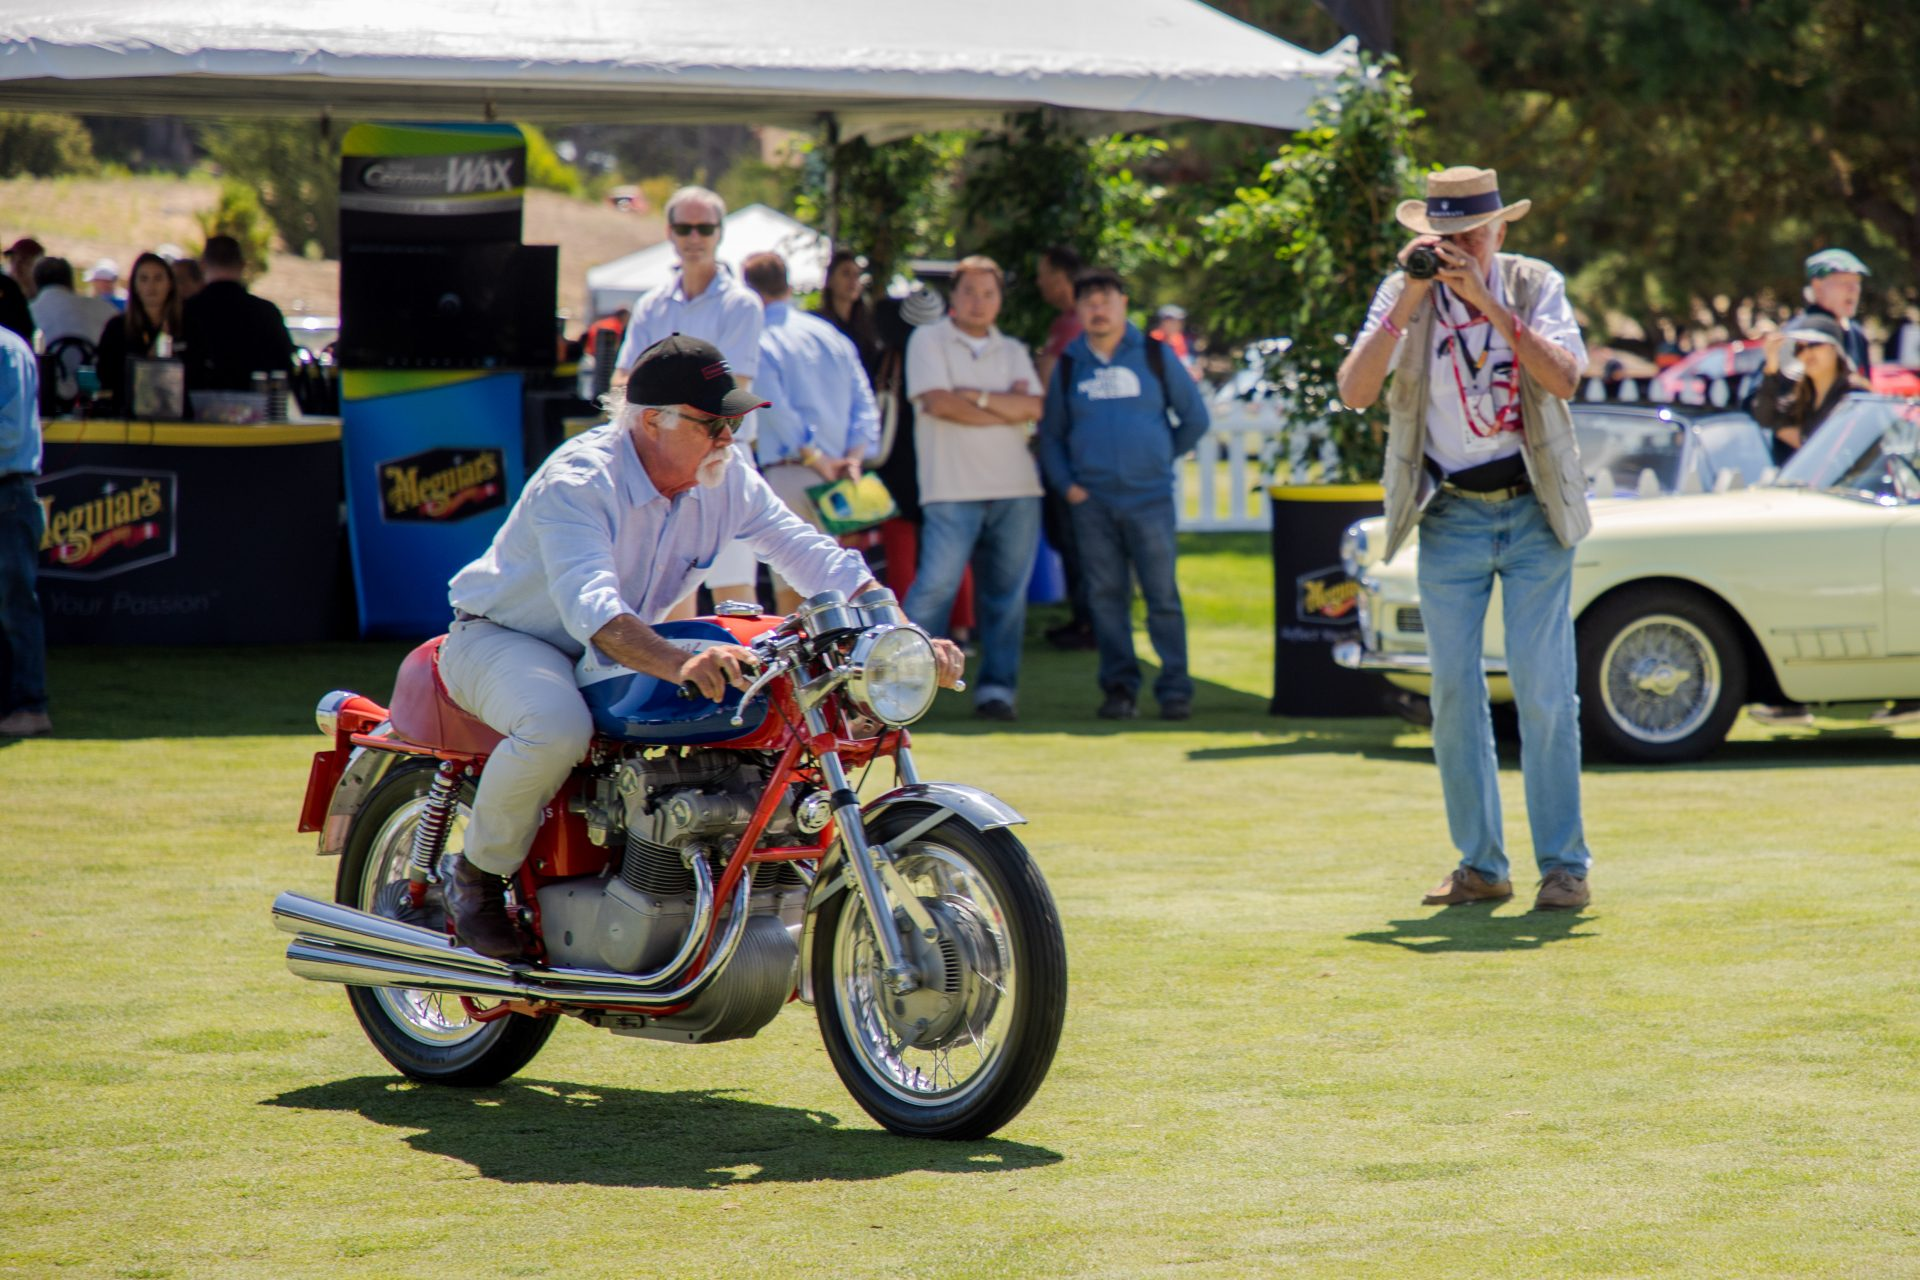 1st place Motorcycles: 1972 MV Agusto owned by the Moto Talbott Collection from Carmel Valley, CA